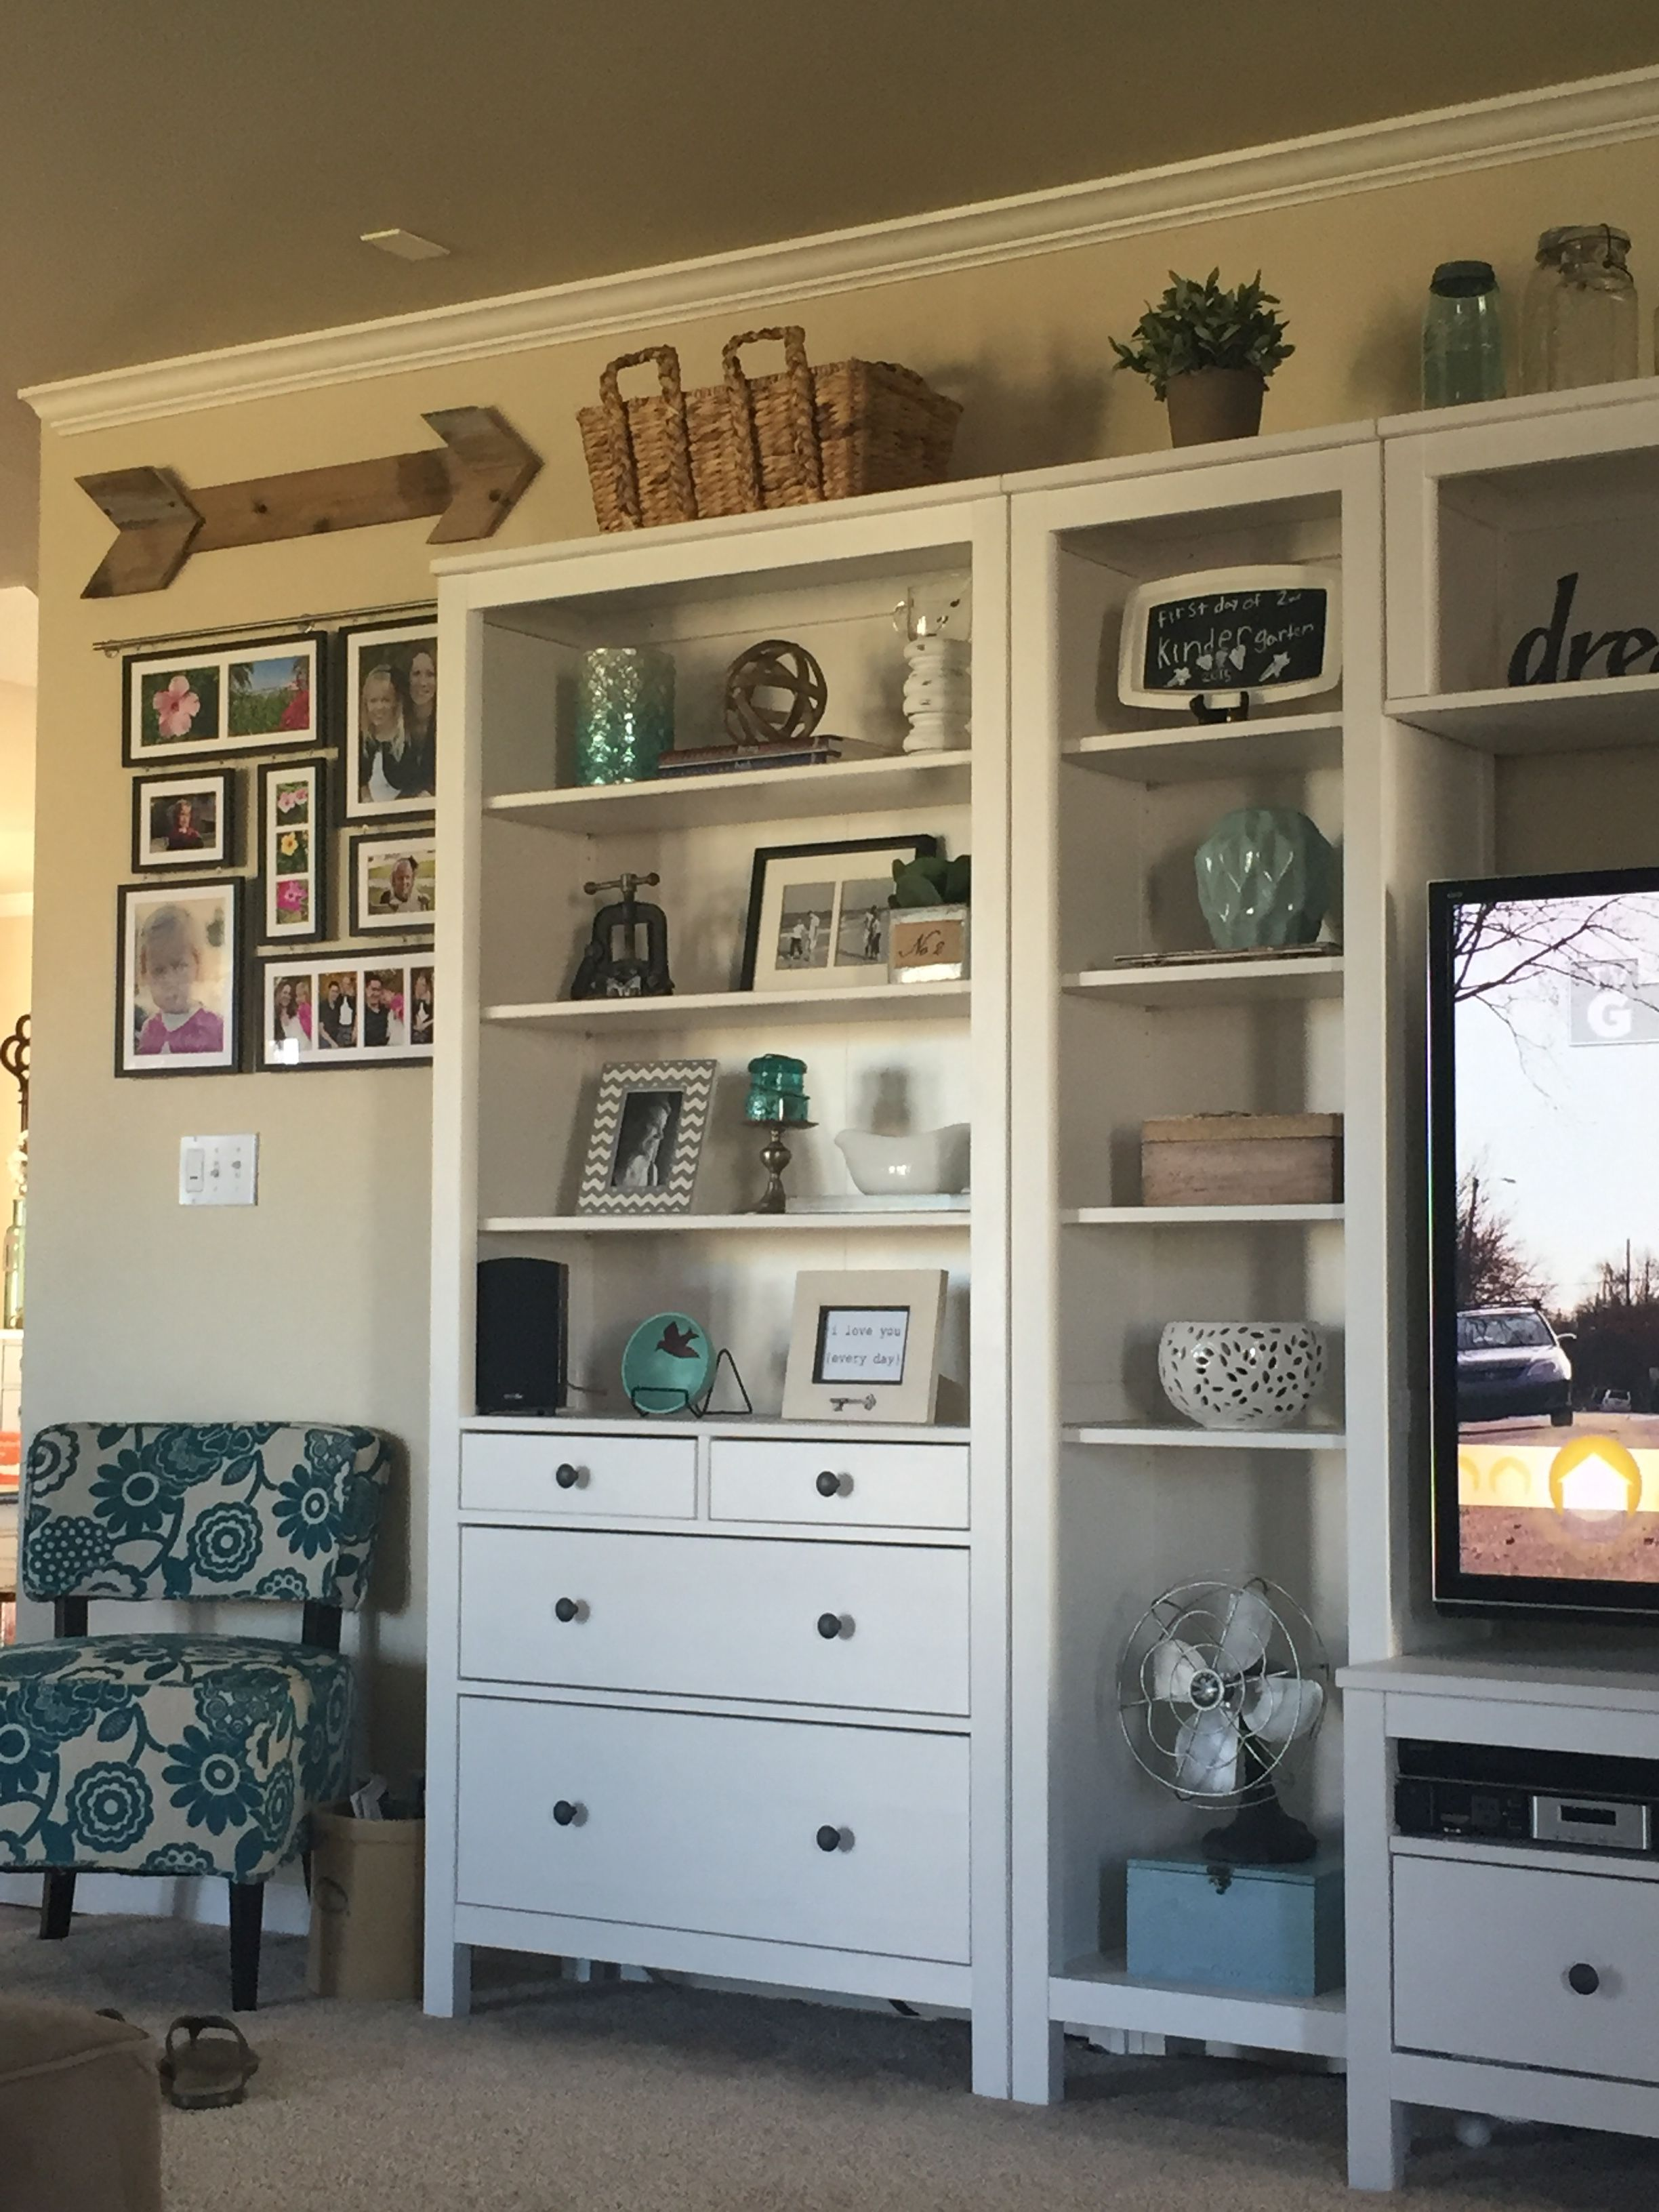 Ikea Hemnes Entertainment Center In Living Room